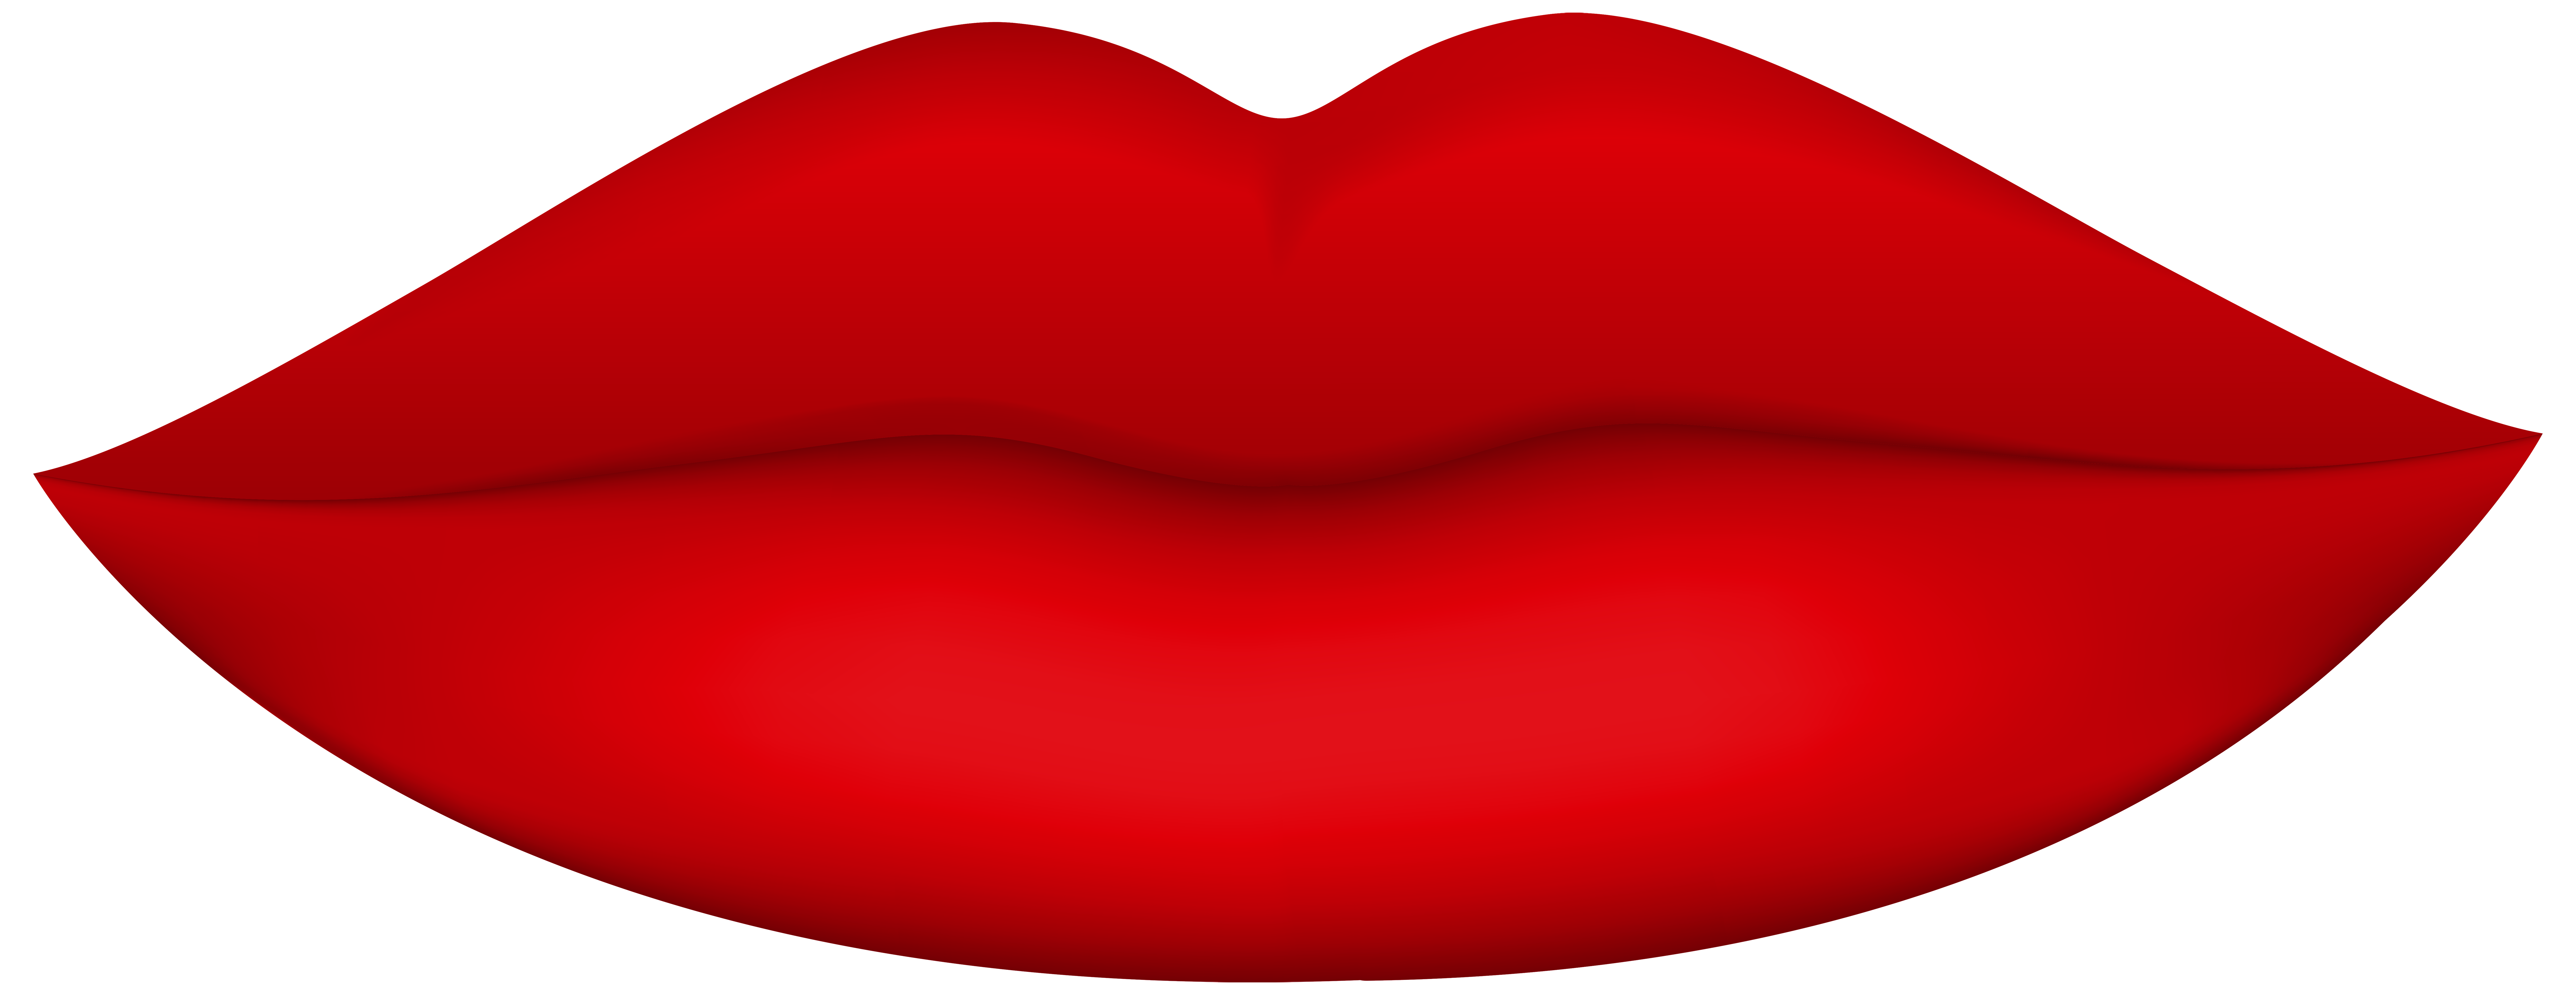 8000x3090 Red Lips Png Clip Art